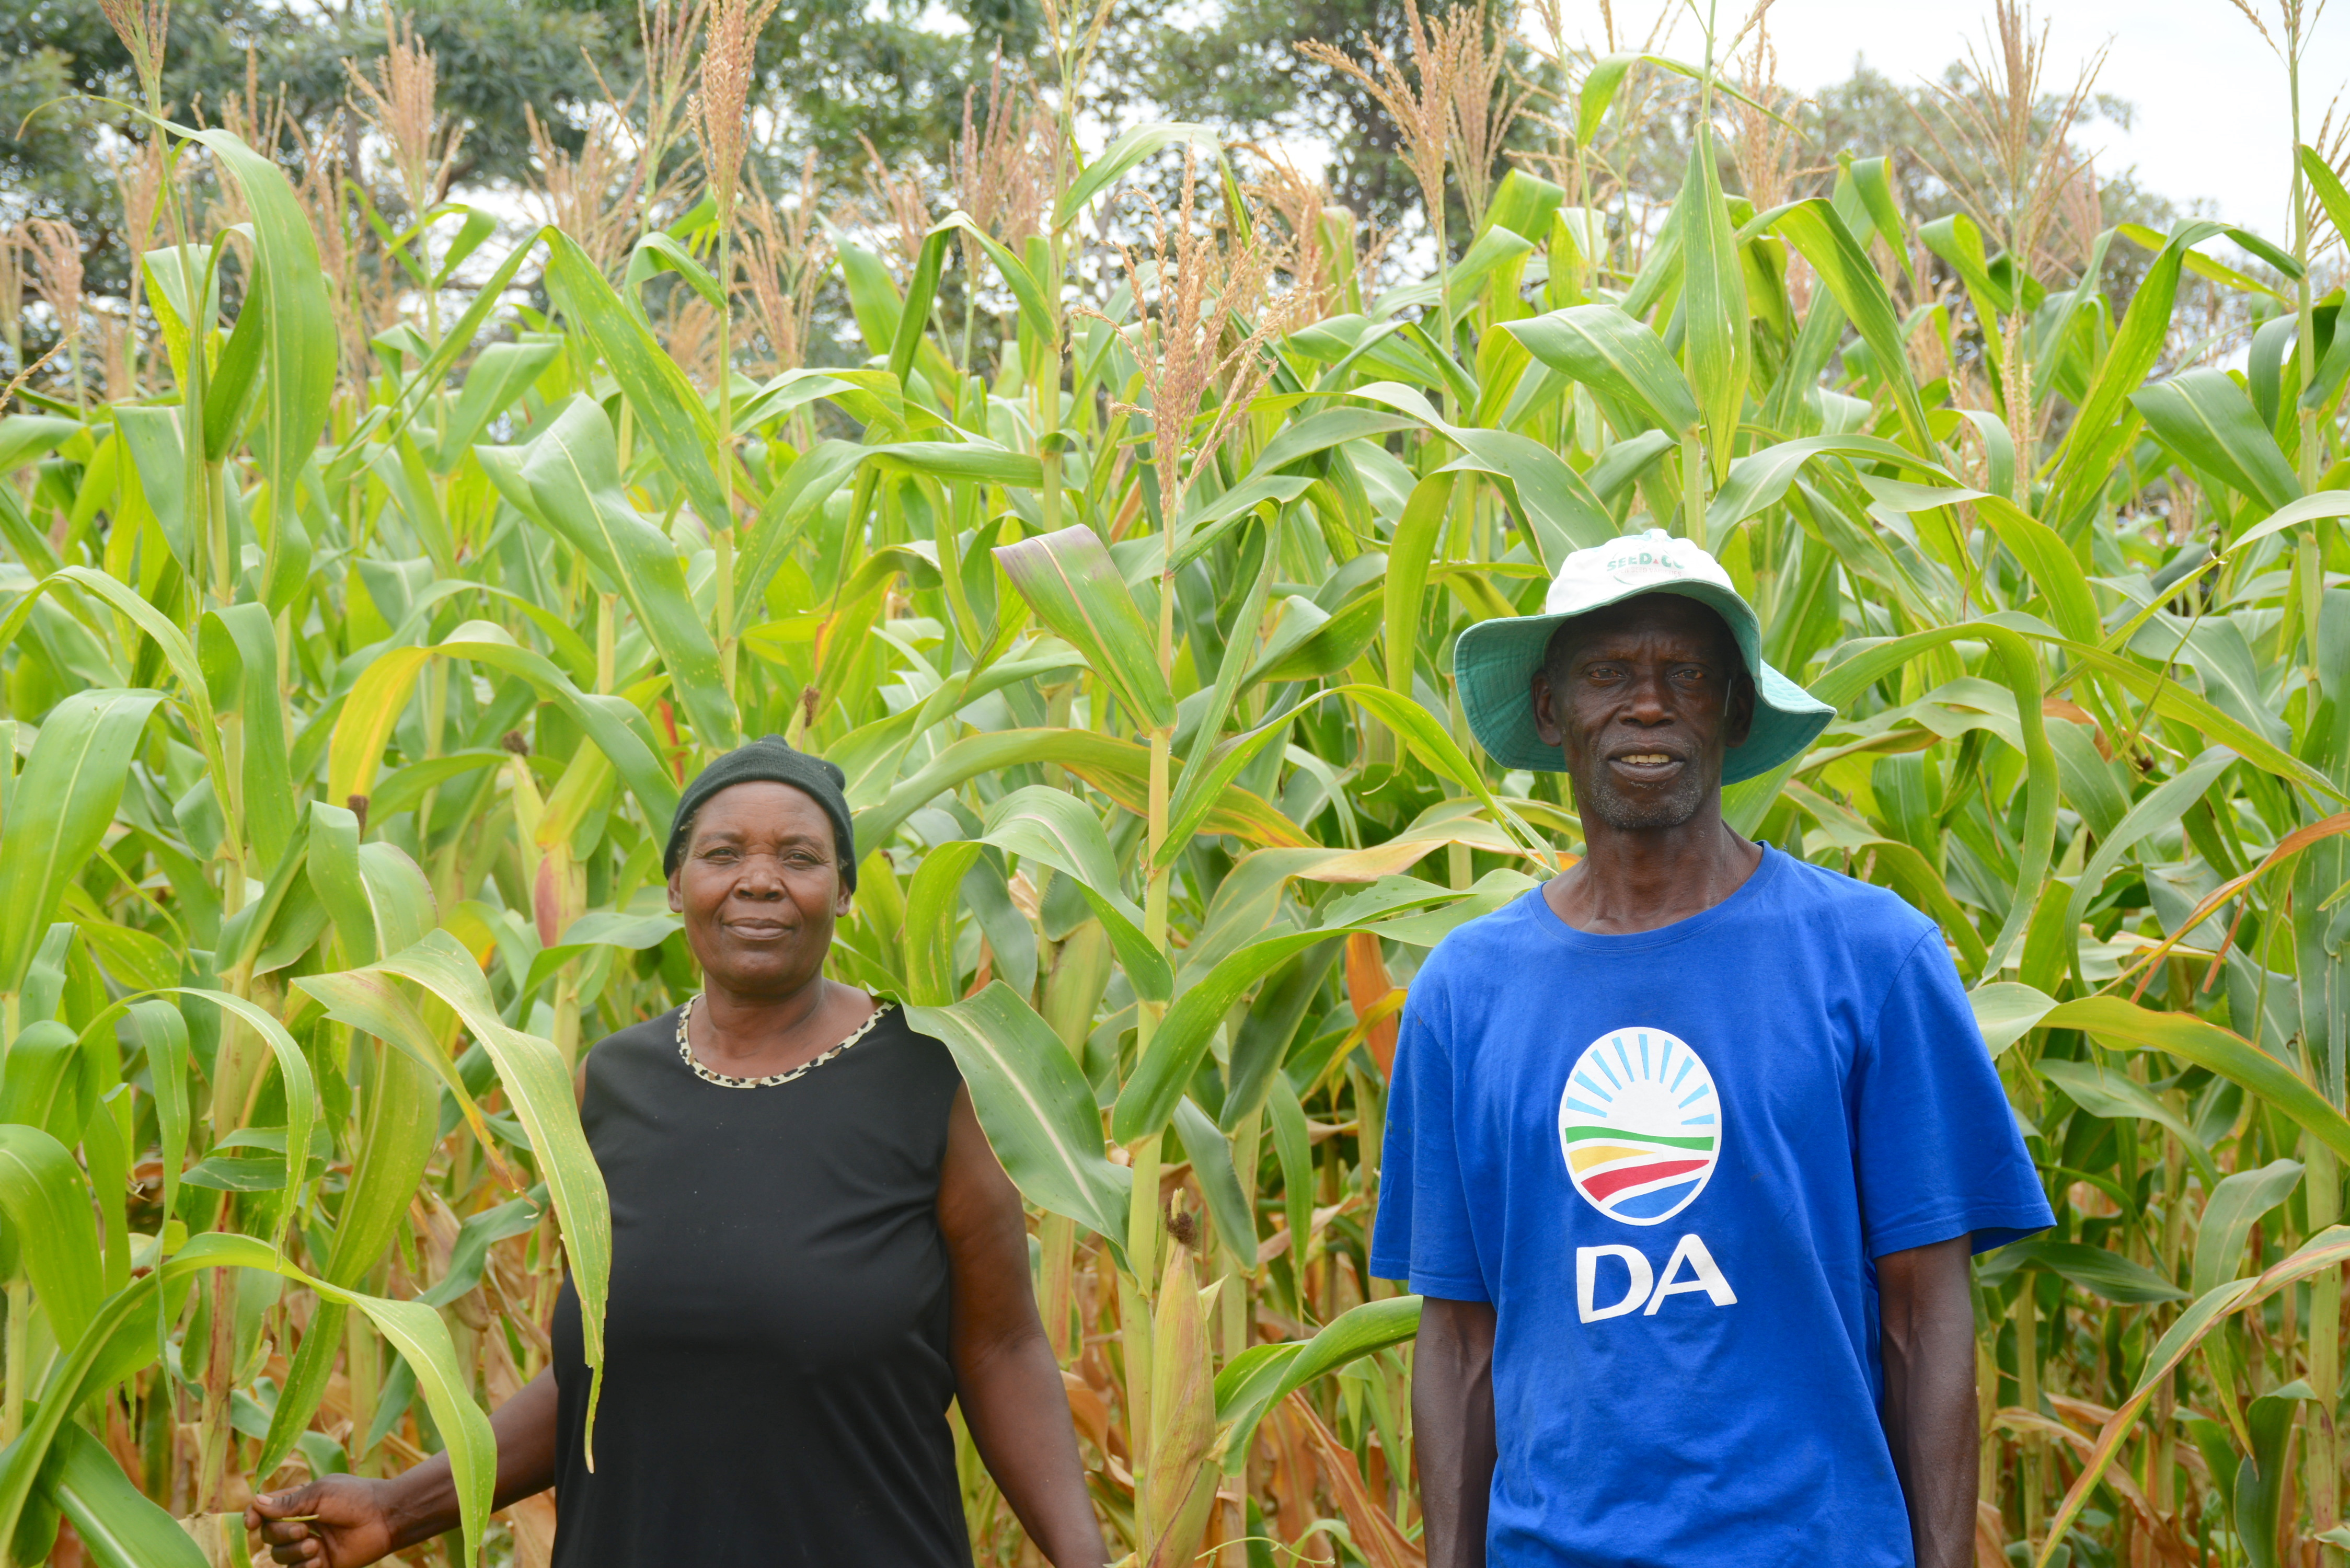 Netsai Garwe (left) and Cosmas Garwe in their maize field, Ward 4, Murewa district, Zimbabwe. (Photo: Shiela Chikulo/CIMMYT)